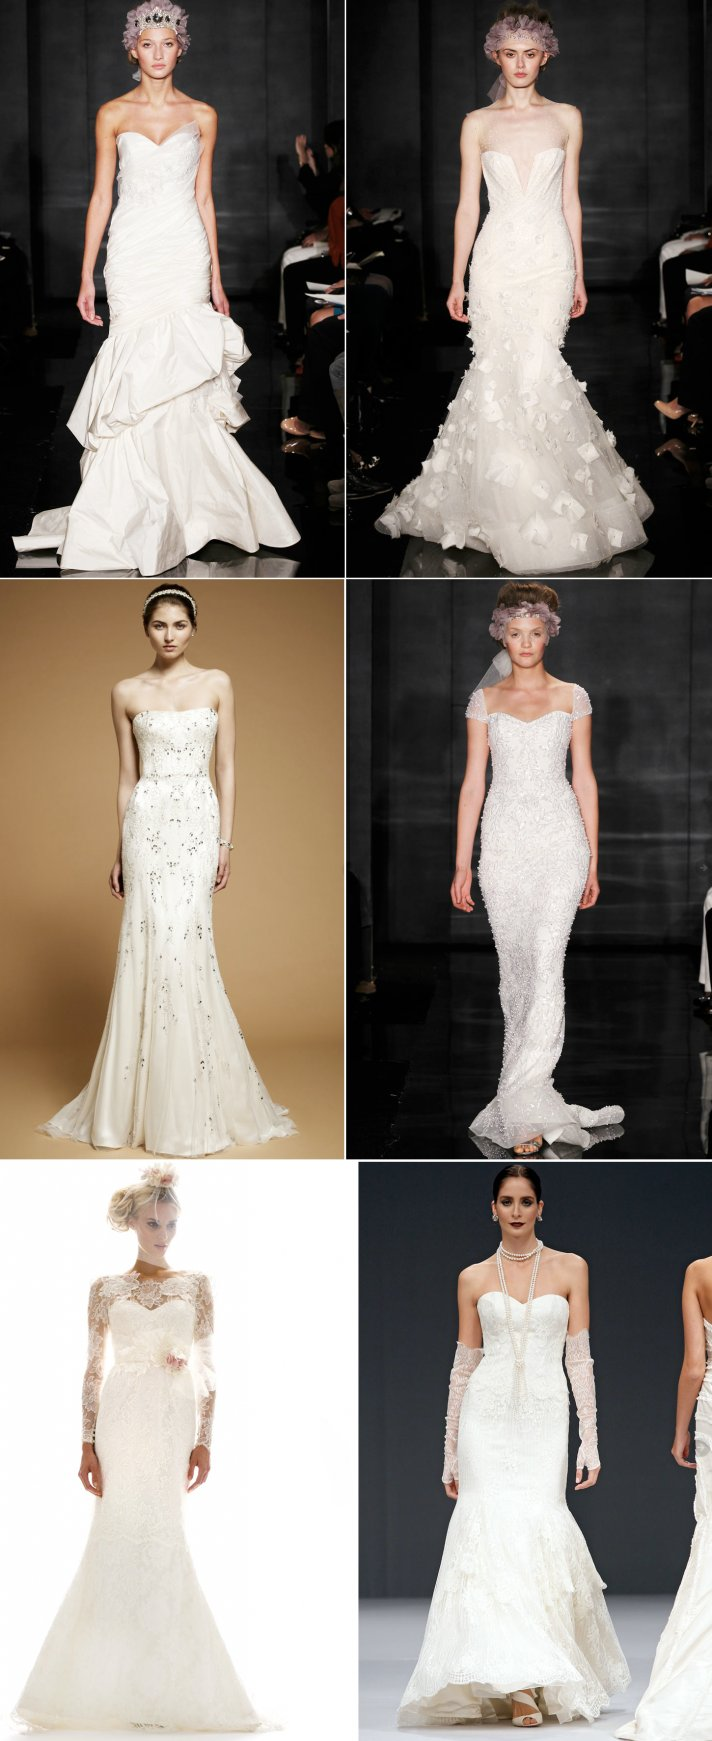 Mermaid style wedding dresses vera wang pictures